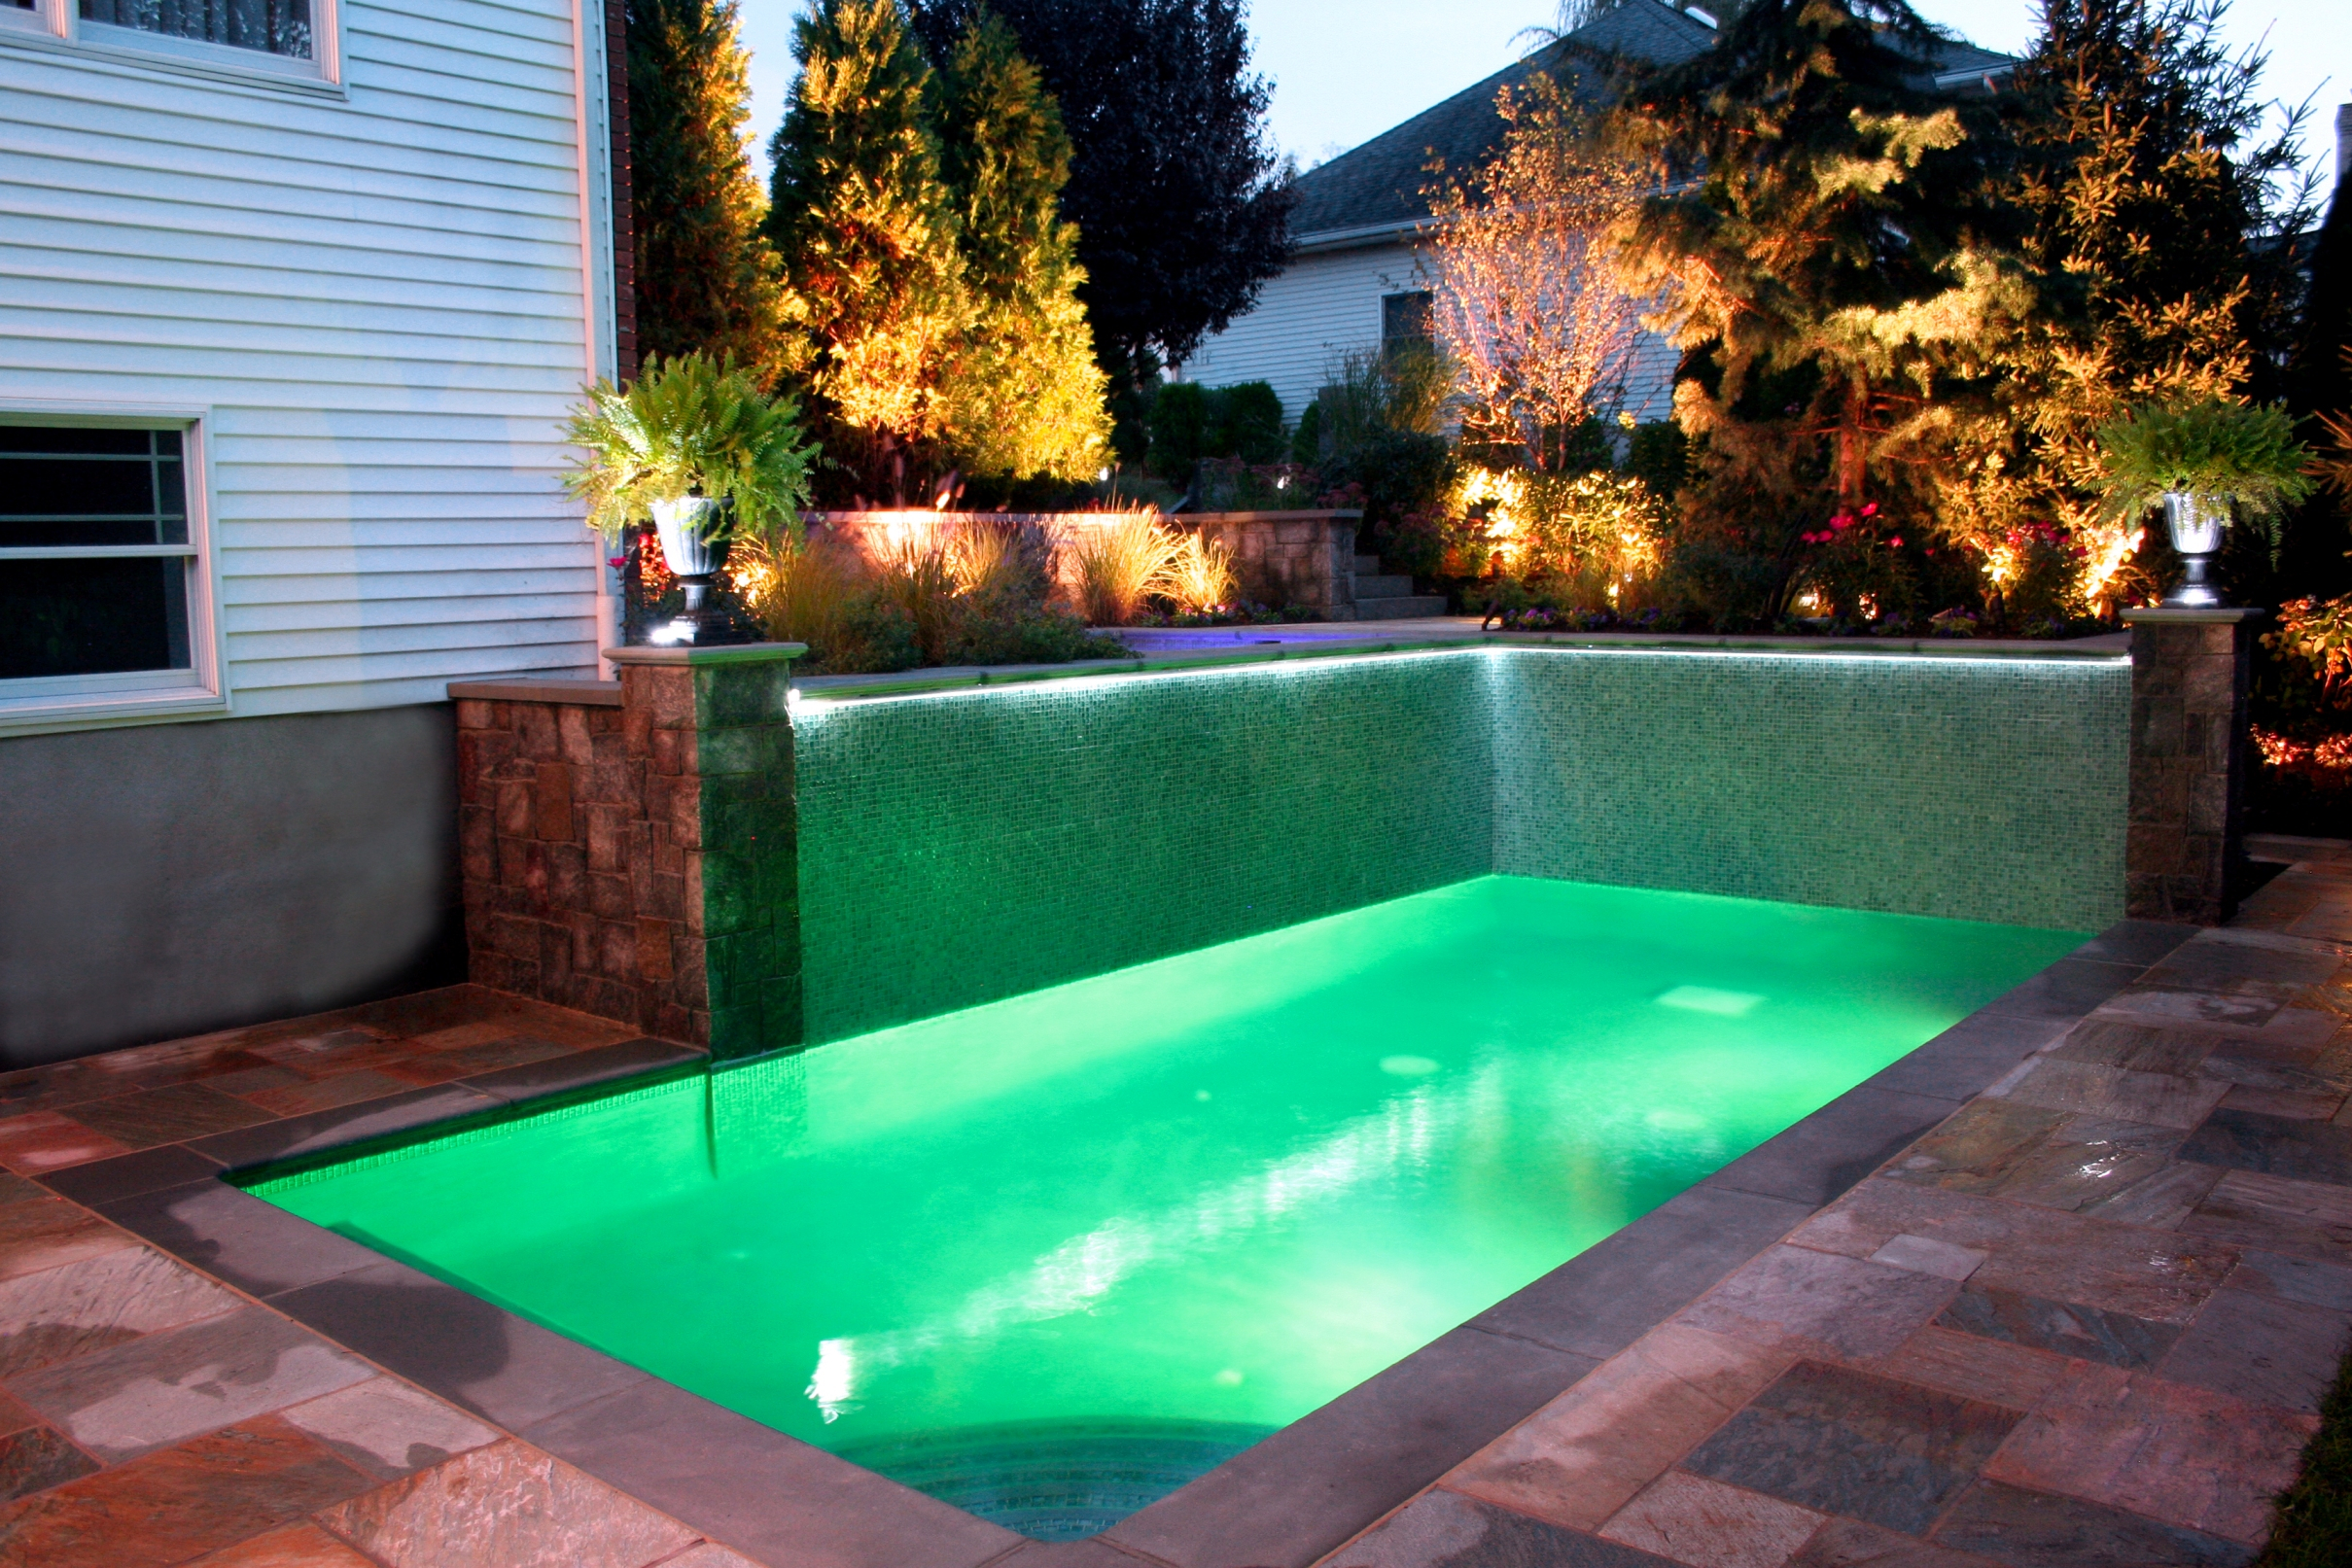 24 Small Pool Ideas To Turn Your Small Backyard Into Relaxing Space with 14 Some of the Coolest Tricks of How to Upgrade Small Backyard With Pool Landscaping Ideas